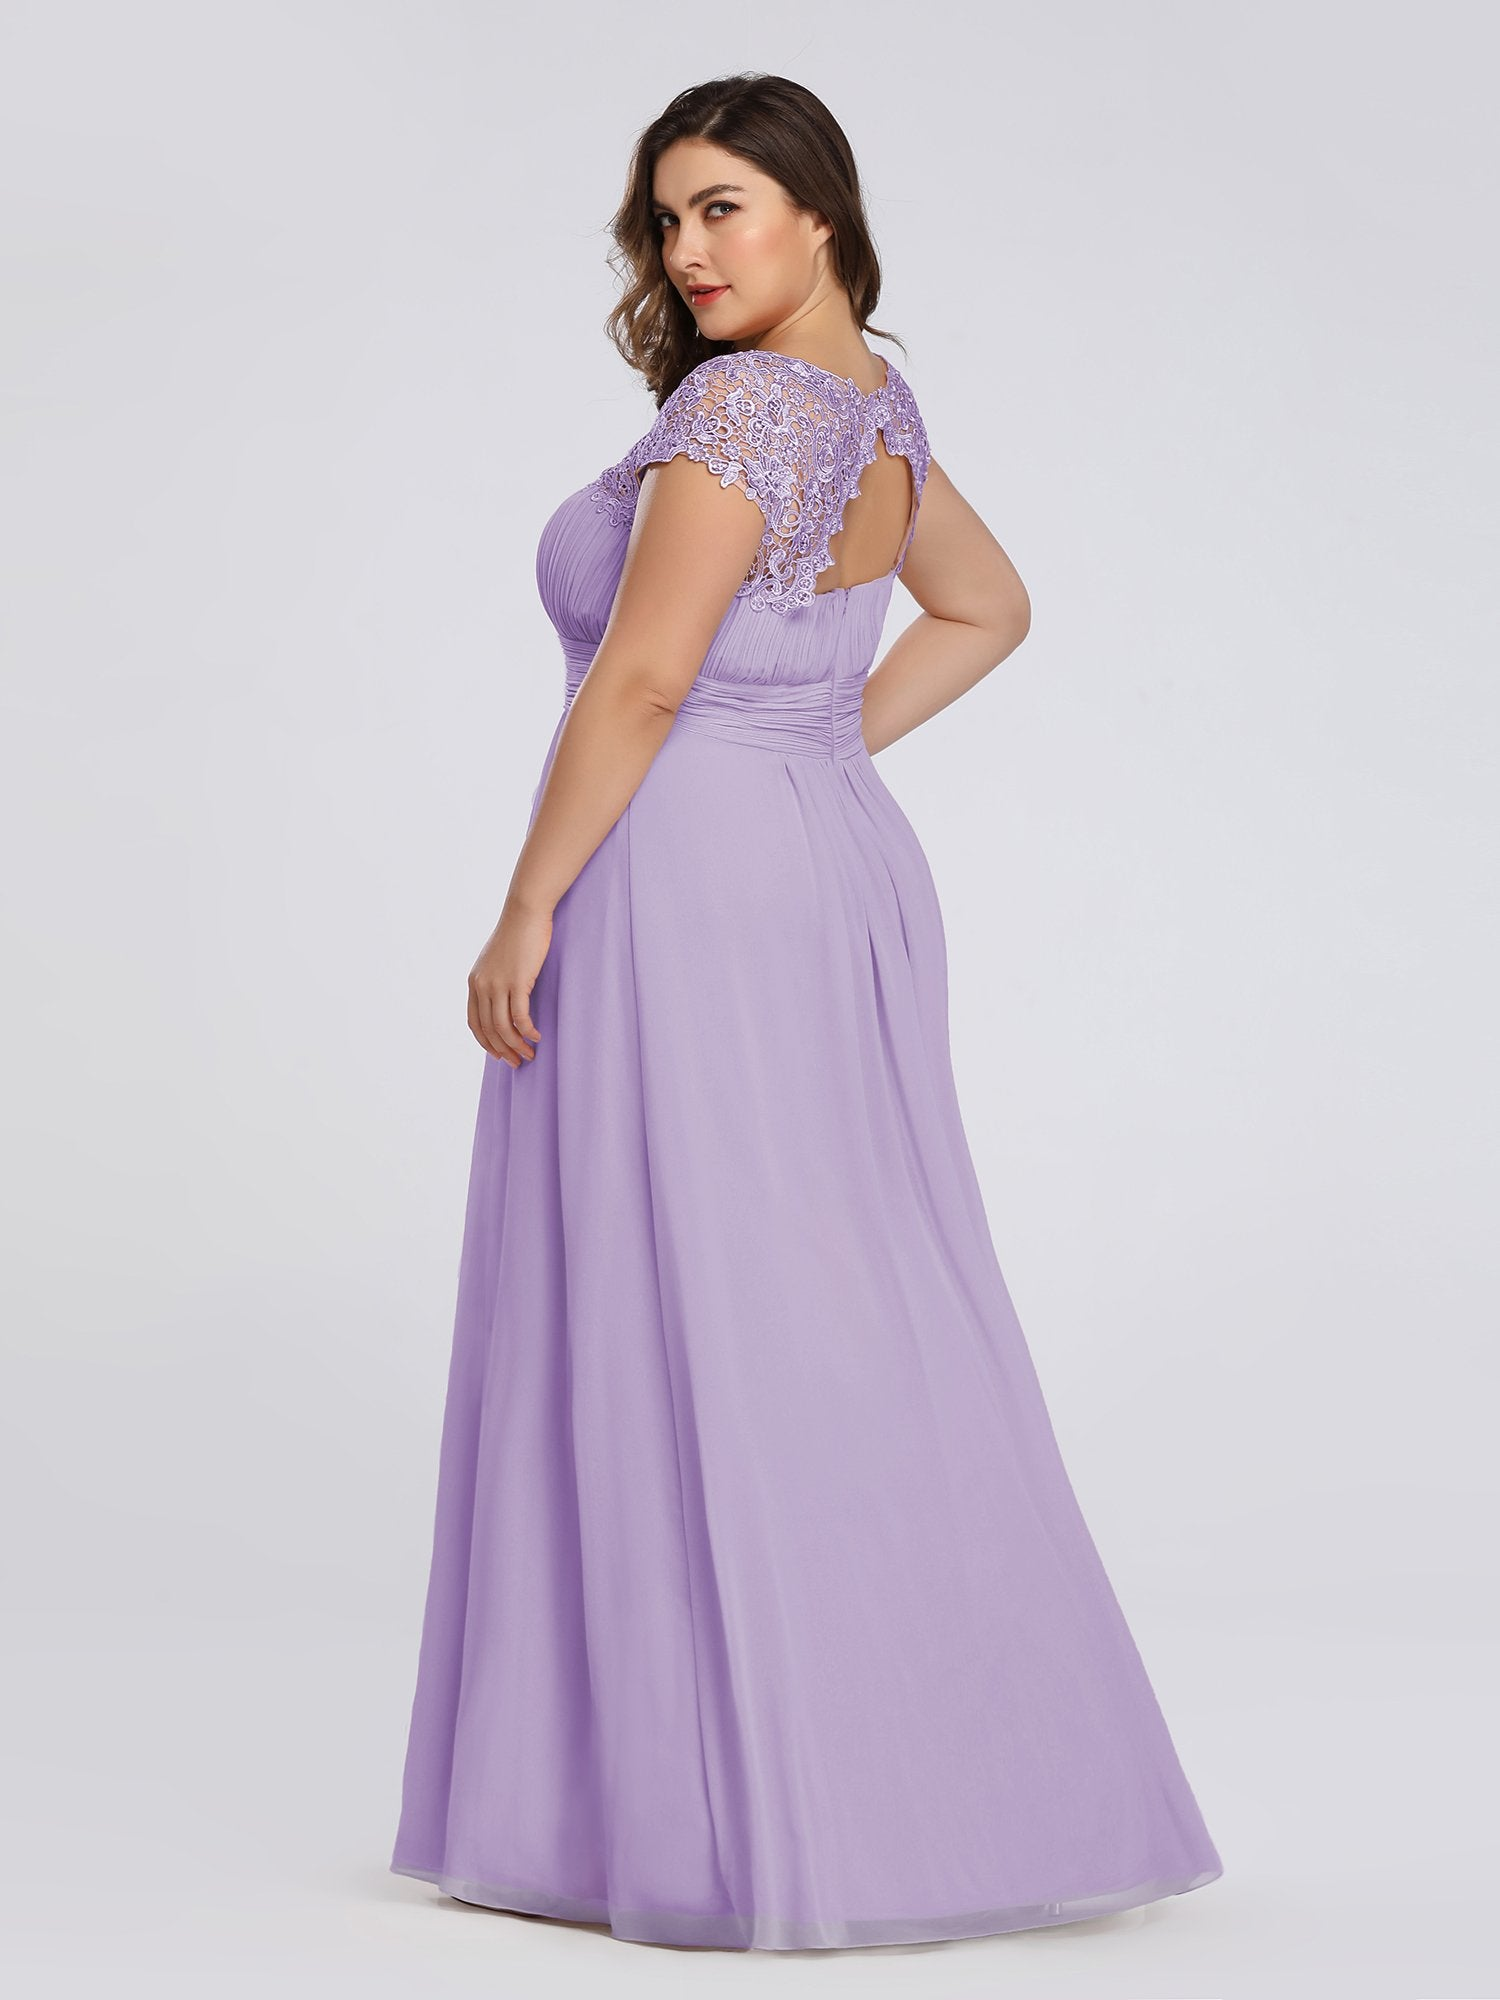 Allanah in lilac s18 on sale